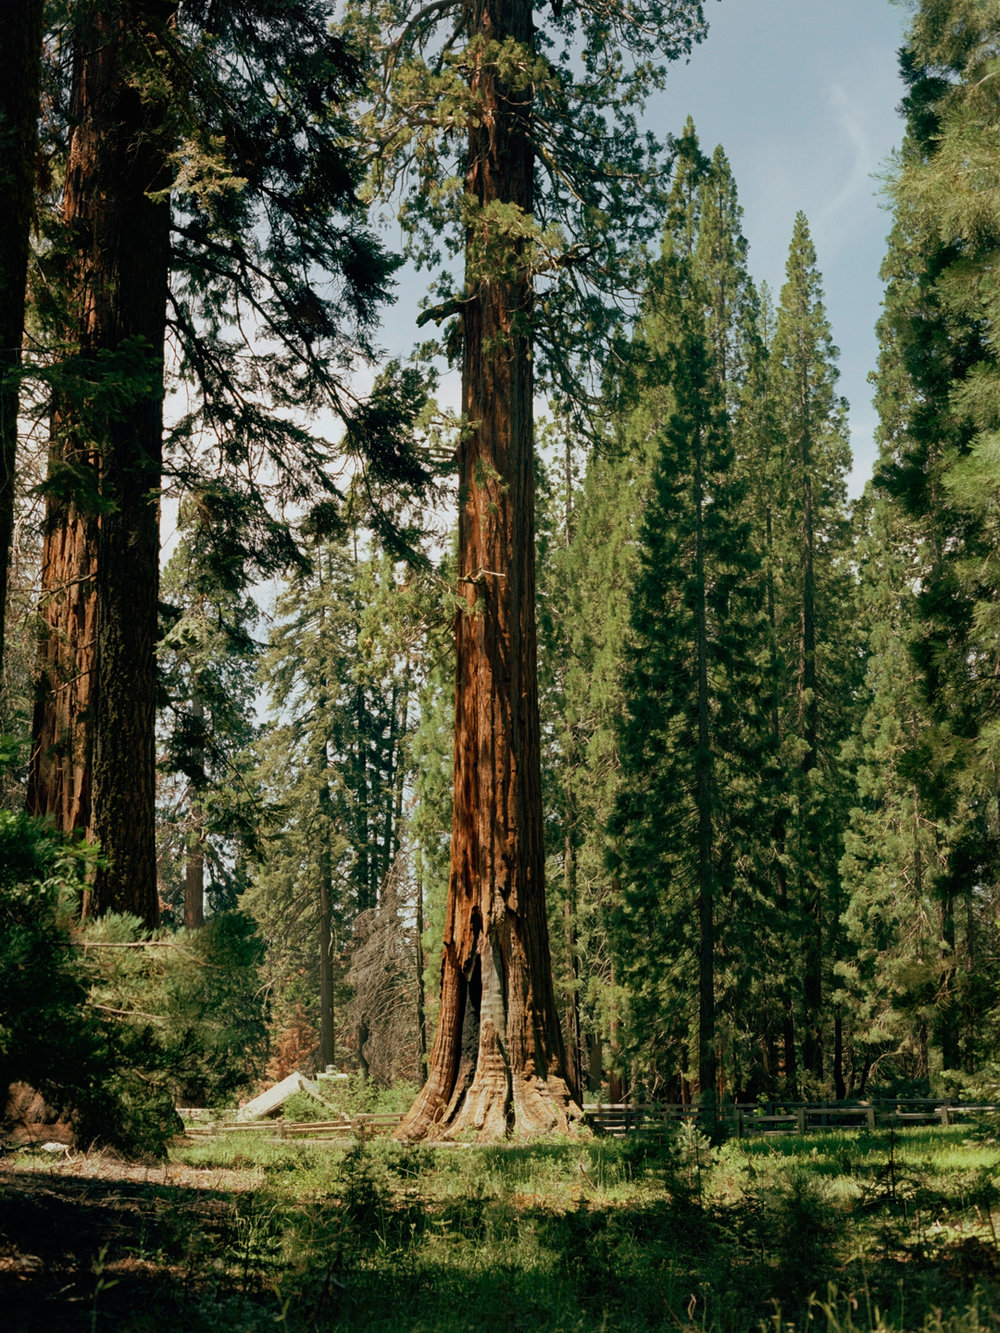 Unnamed Sequoia, Sequoia National Park